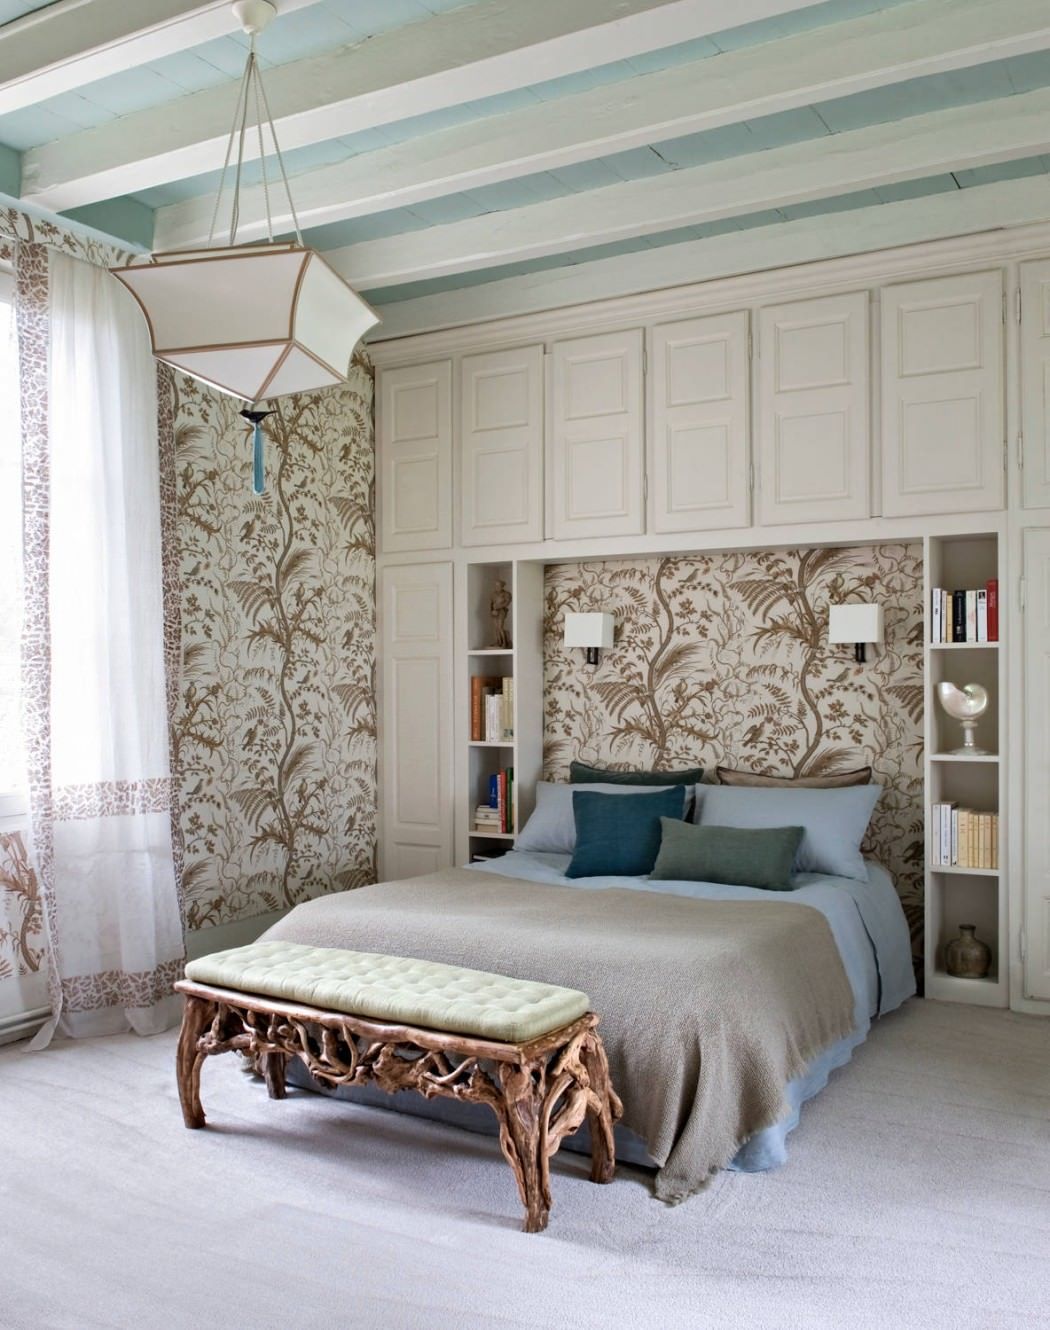 eclectic residence in france - Eclectic Canopy 2015